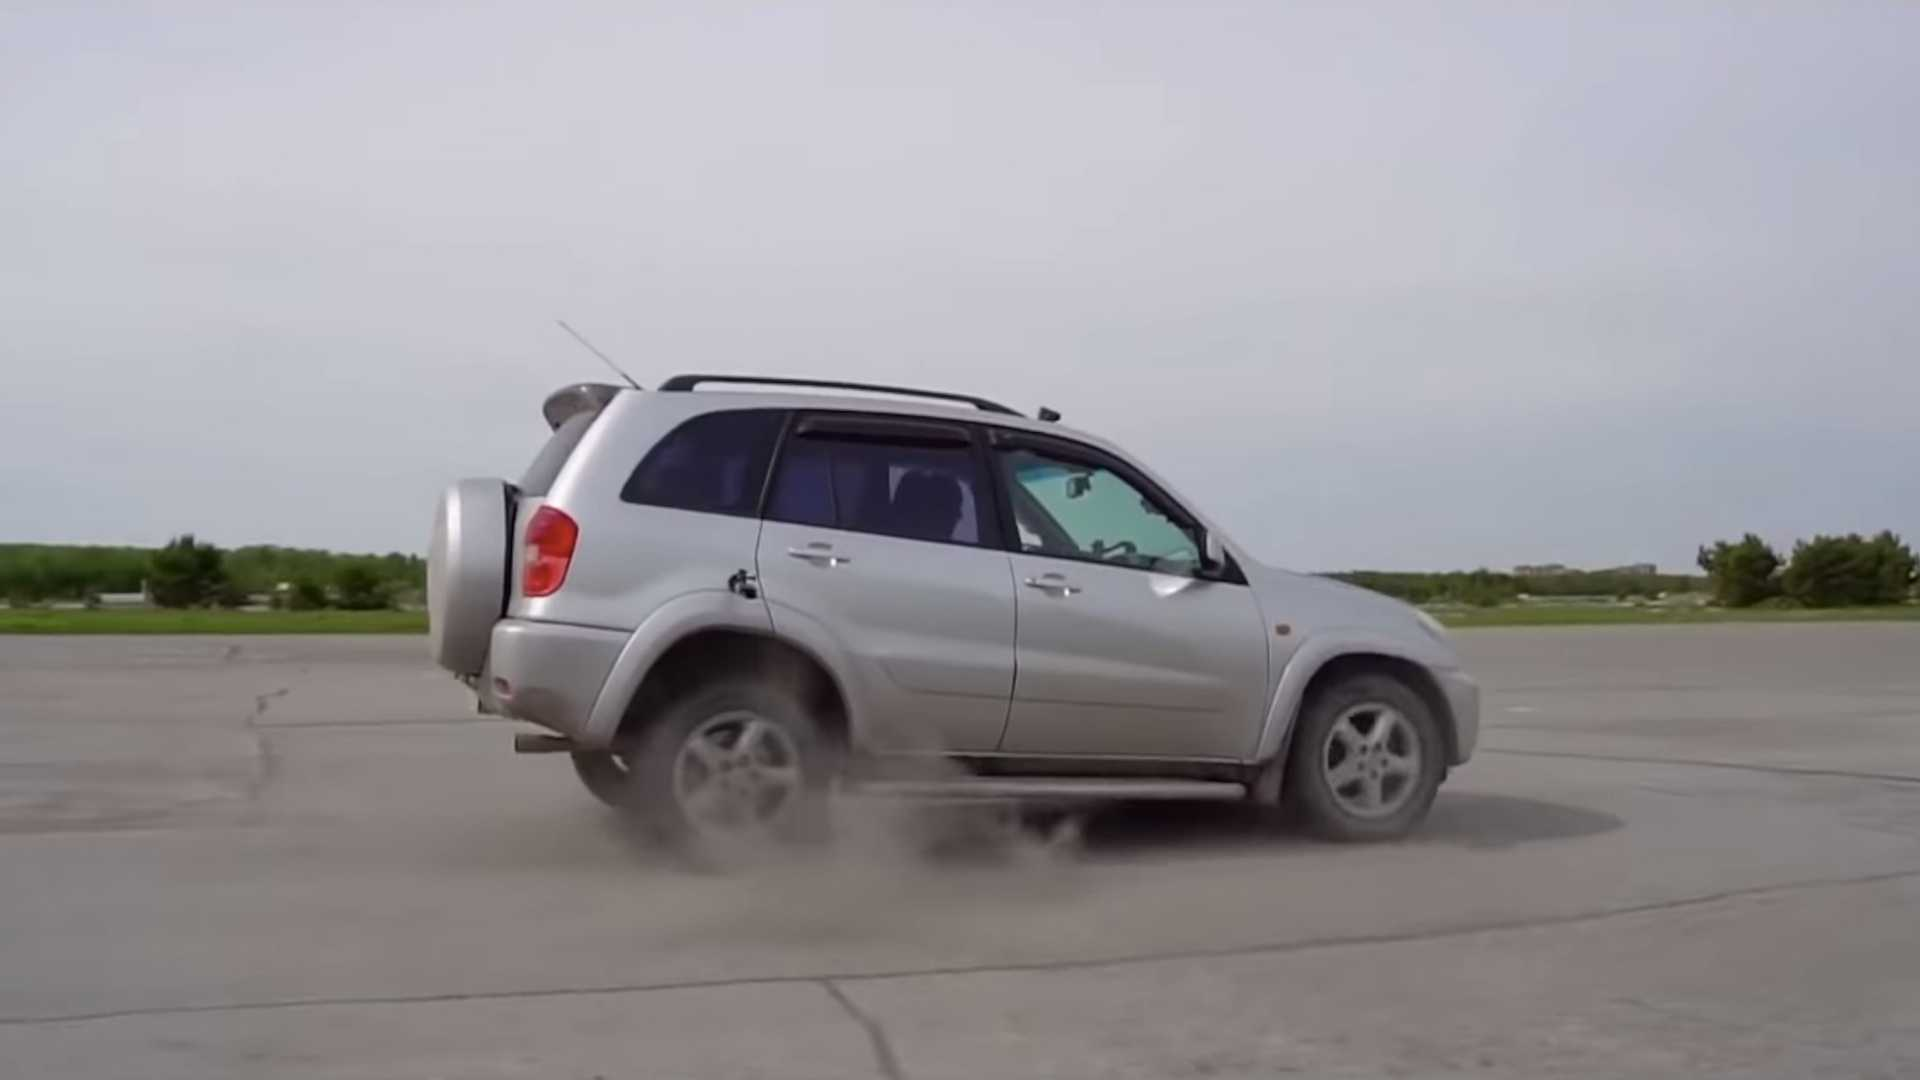 See Toyota RAV4 With Auto Gearbox Switch To Reverse At 62 MPH